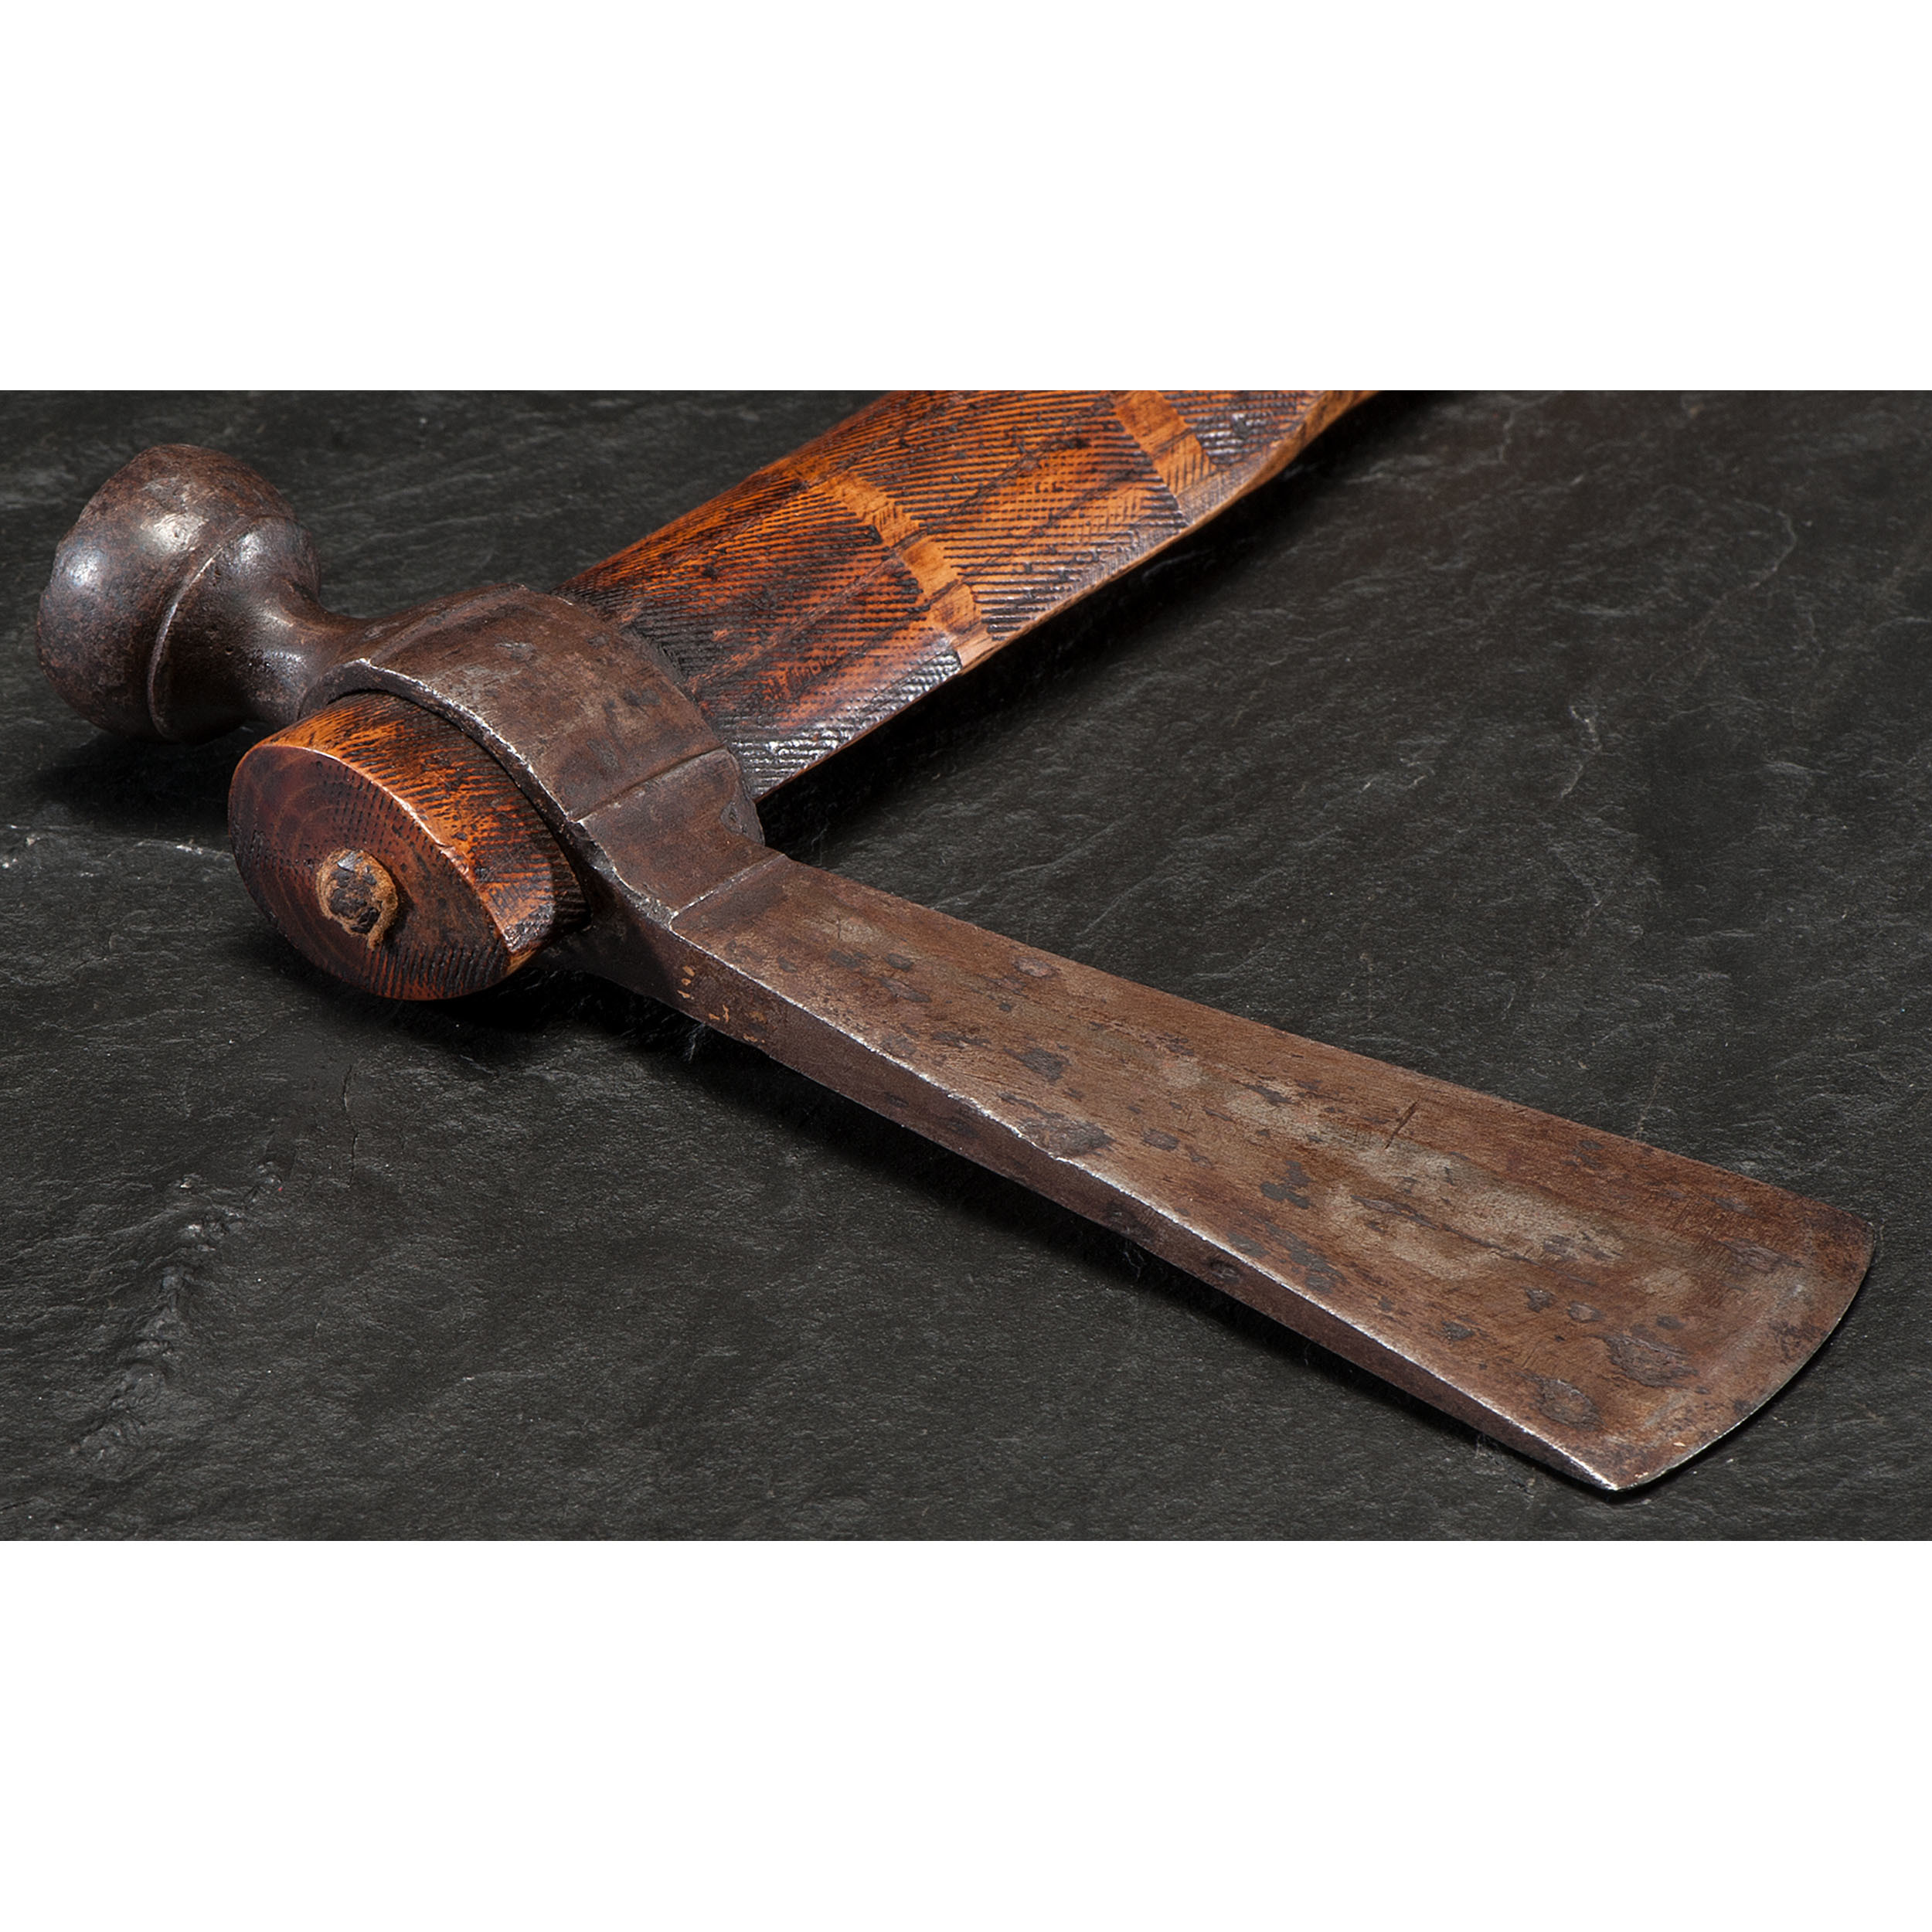 Eastern Plains Pipe Tomahawk | Cowan's Auction House: The